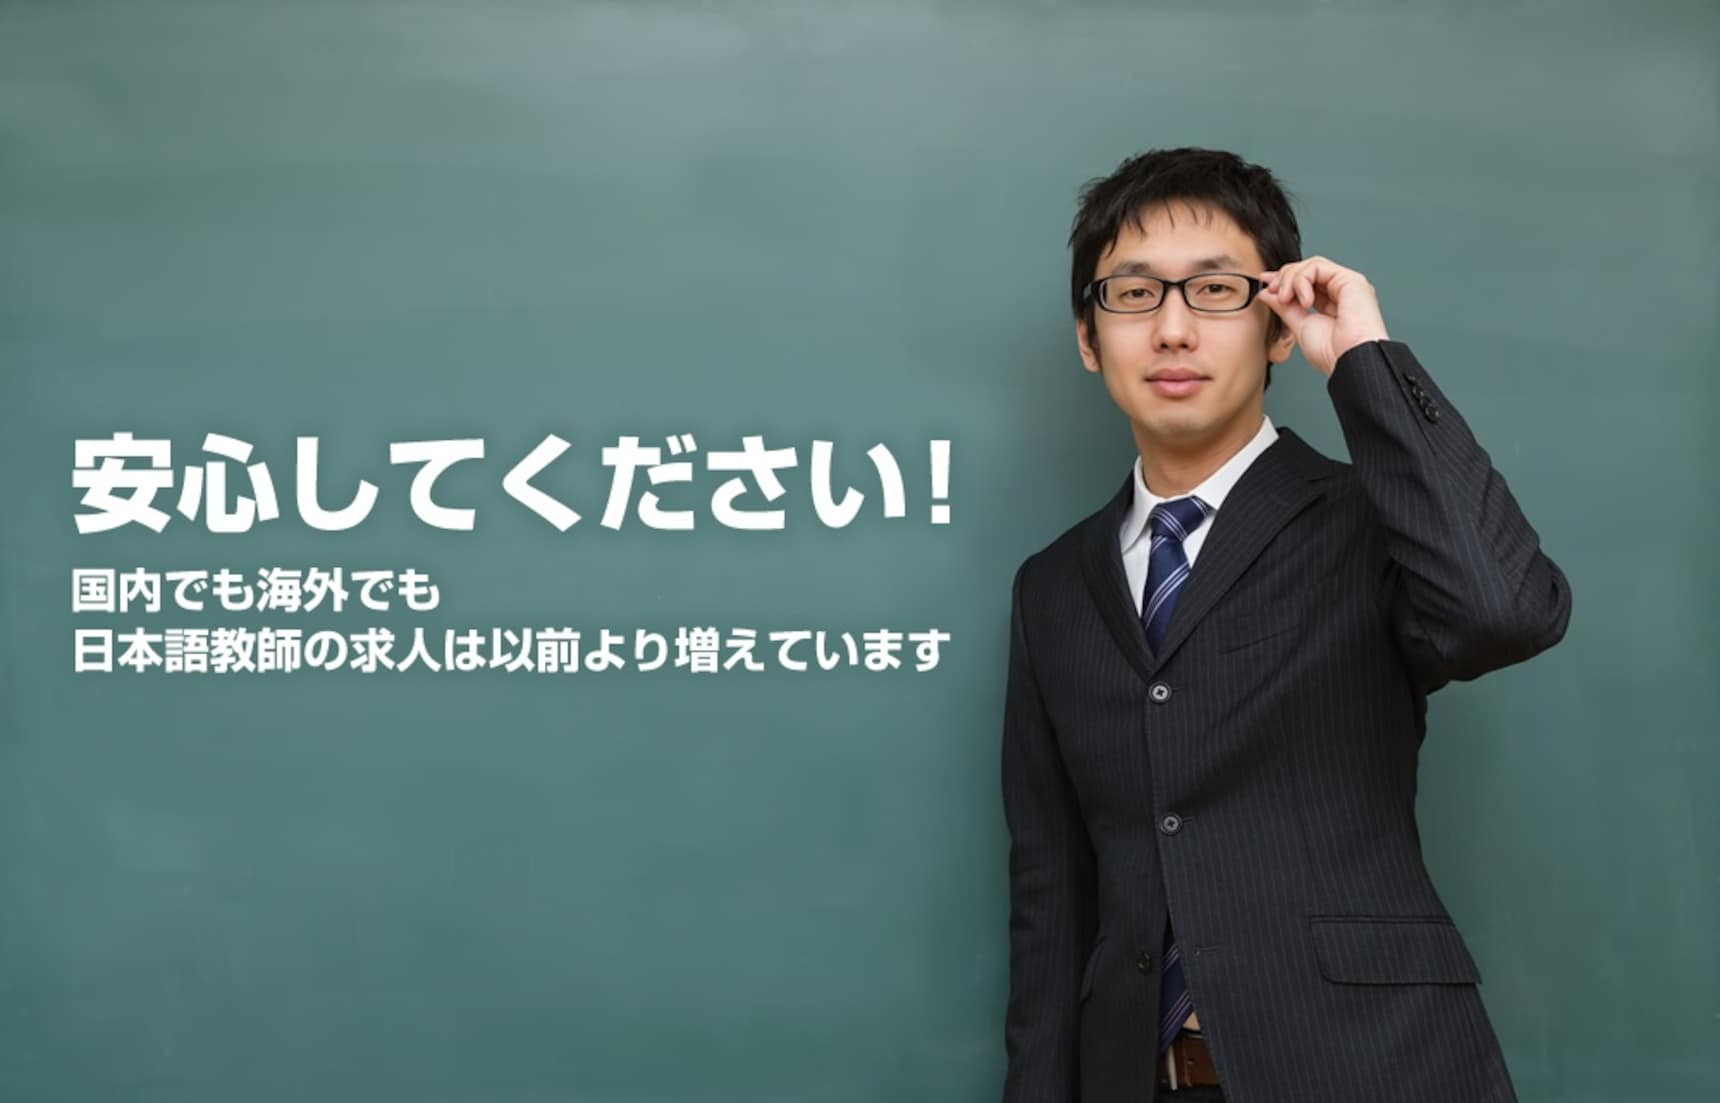 4 Easy Phrases to Rock Your Japanese Workplace